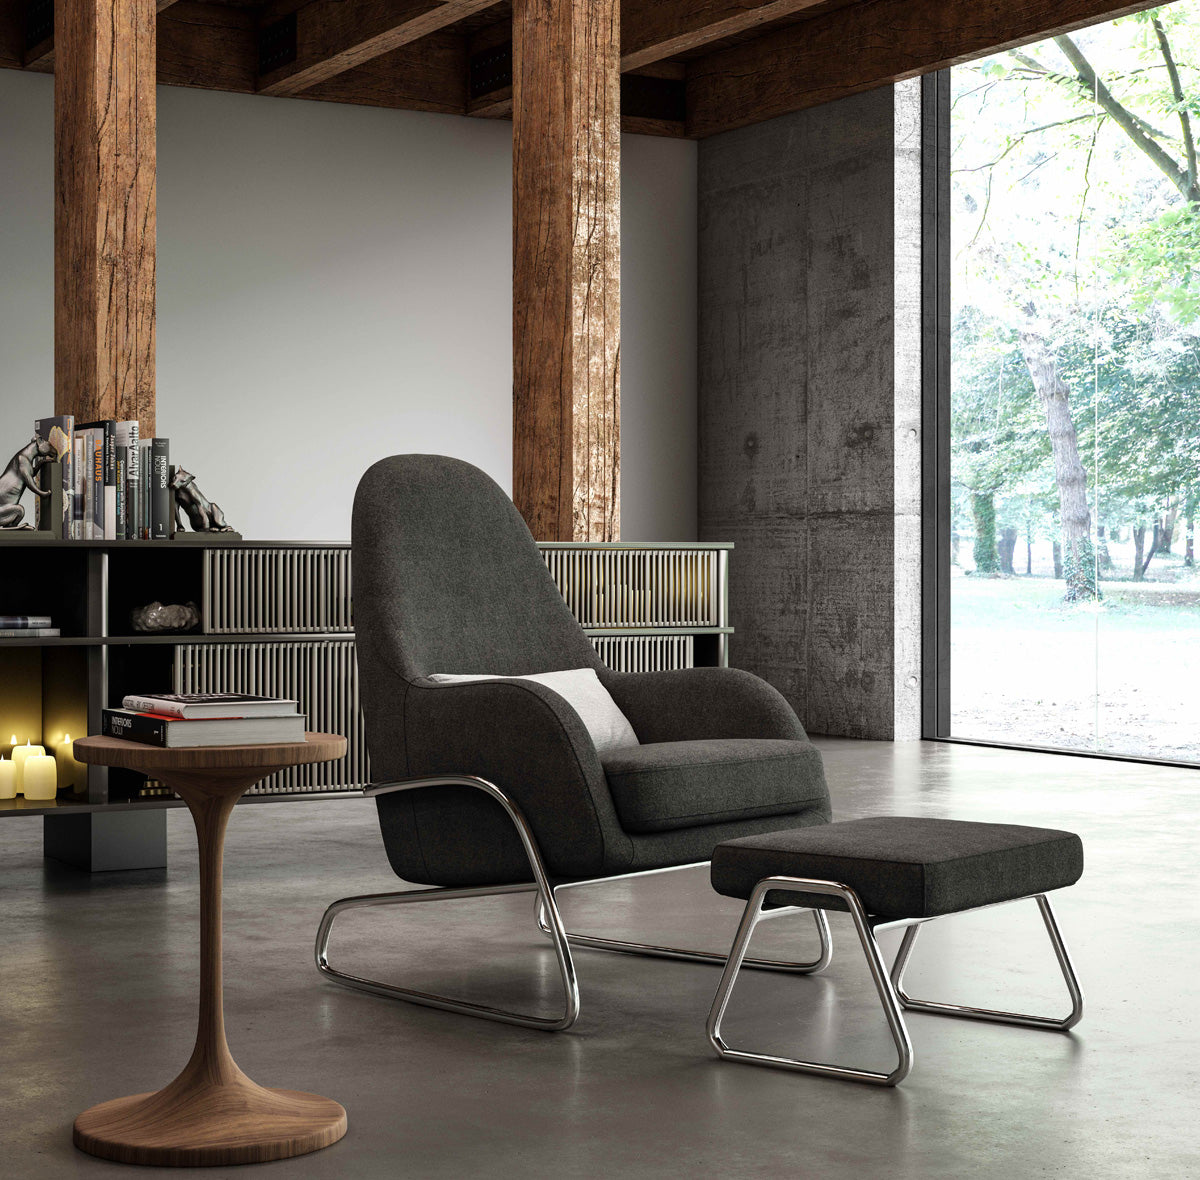 Monte Design Modern Furniture Responsible Manufacturing.